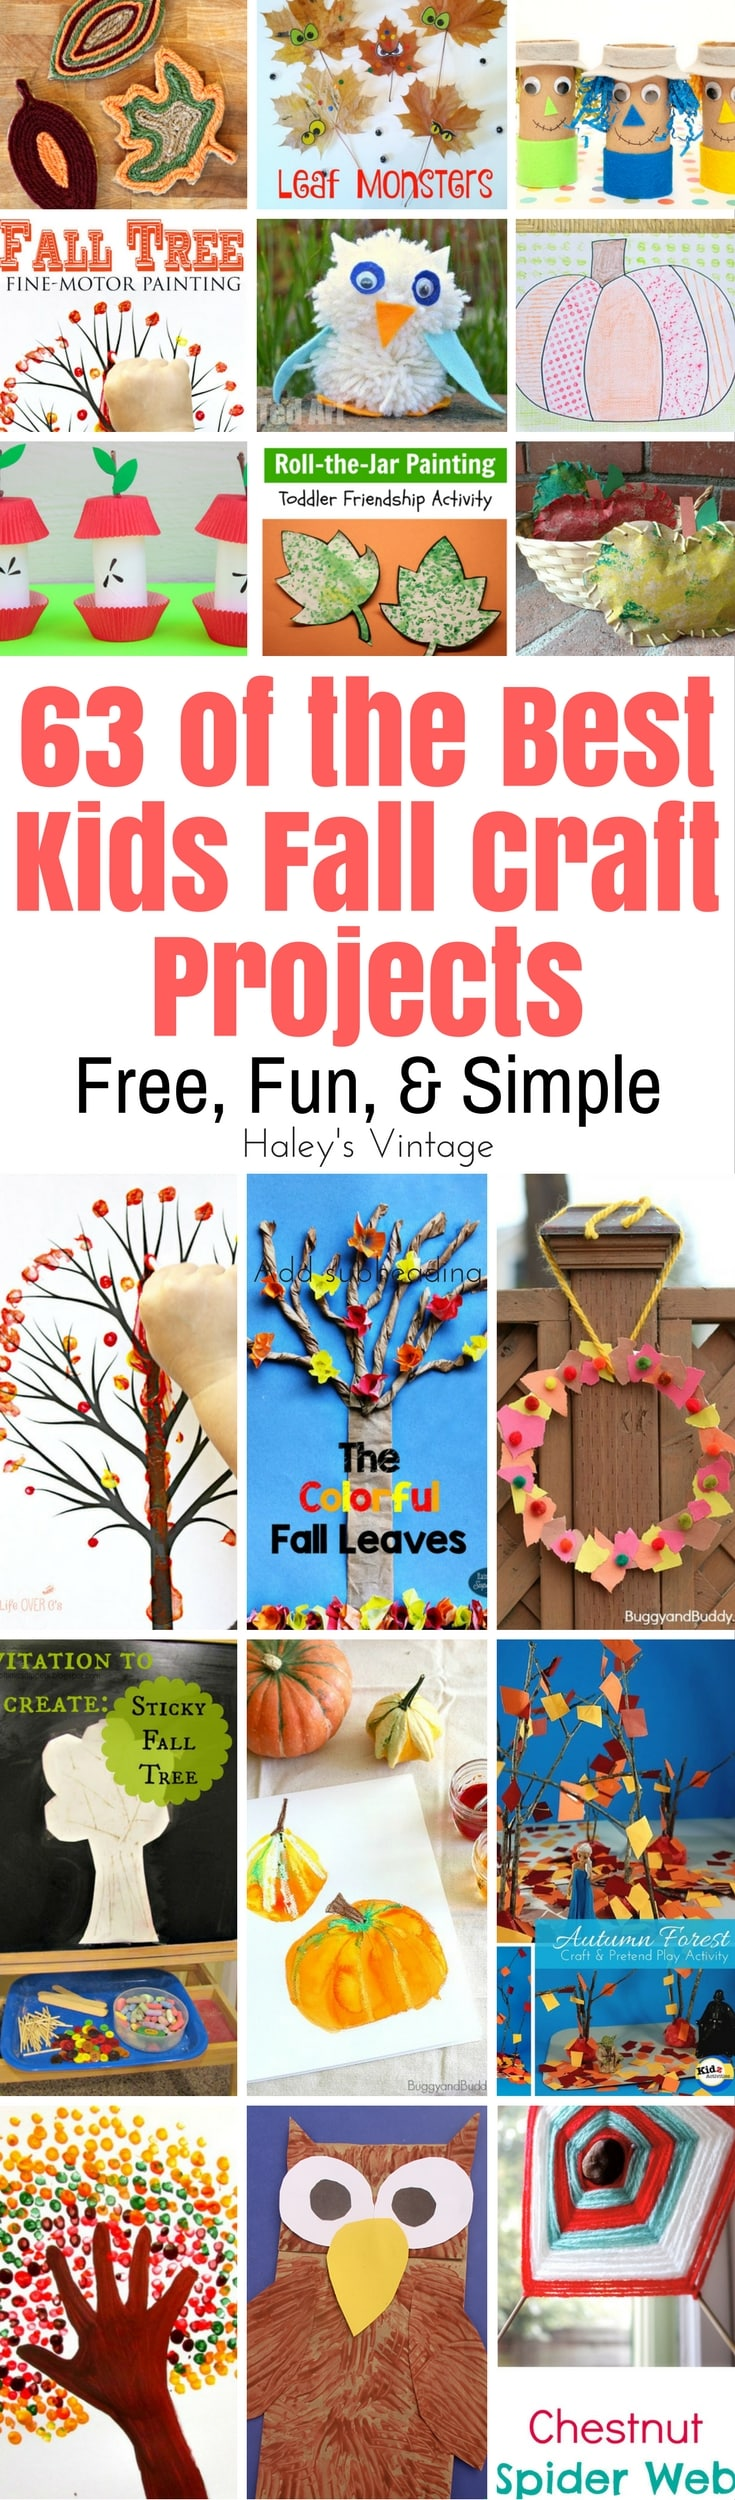 fall craft idea 63 of the best fall craft projects free and simple 1977